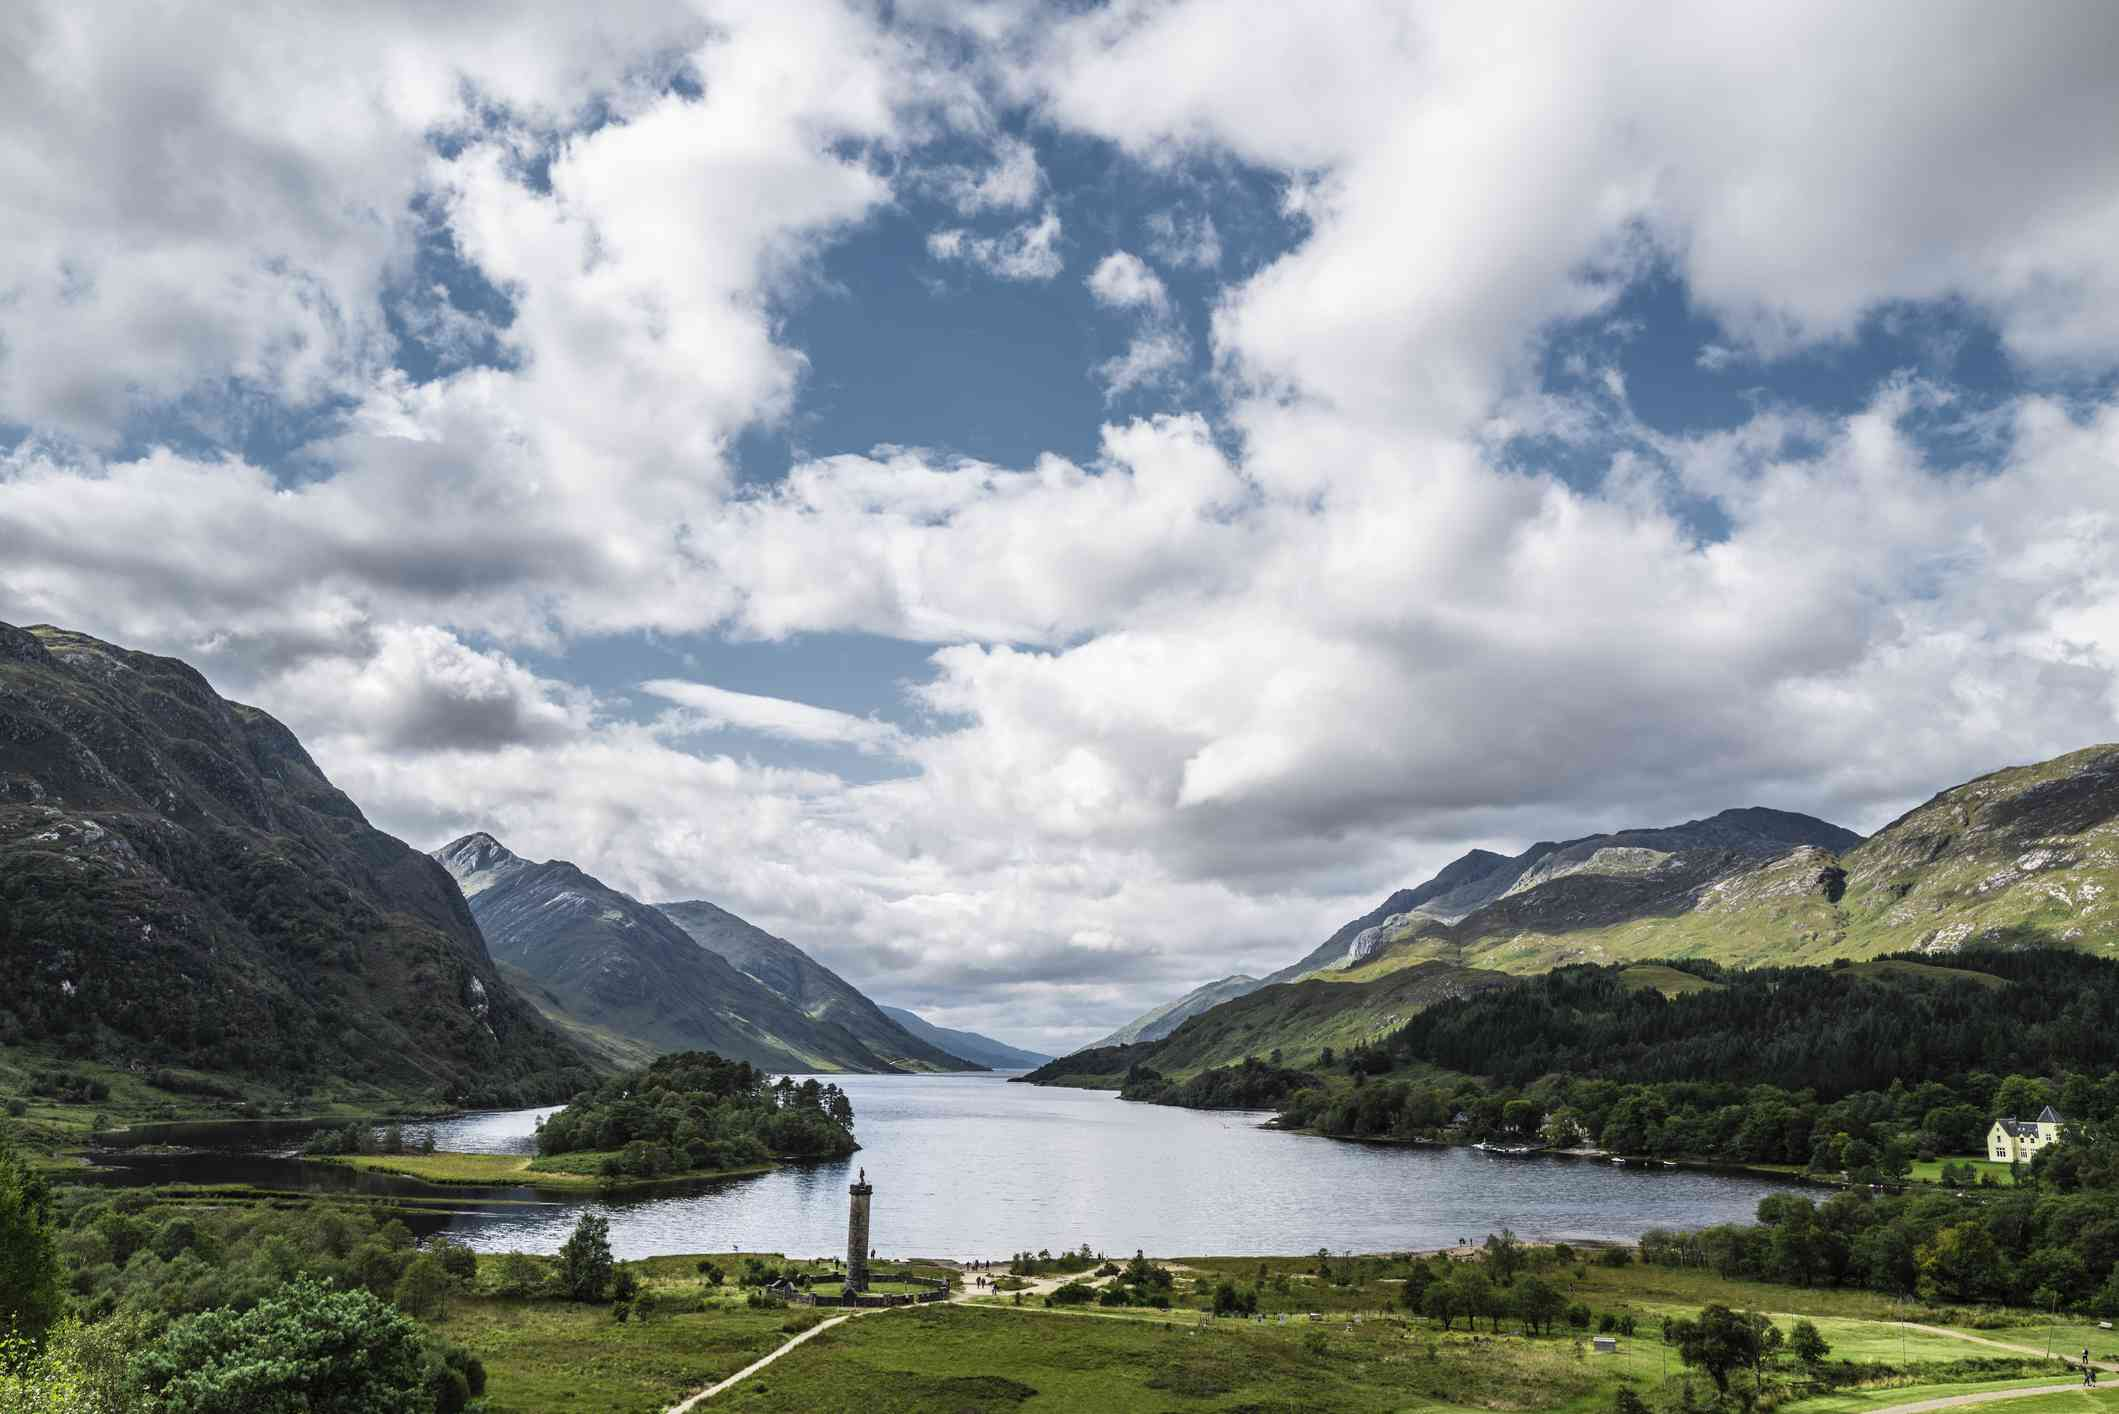 View from above Loch Sheil, surrounded by mountains with green lawn in the foreground under a blue sky with white clouds